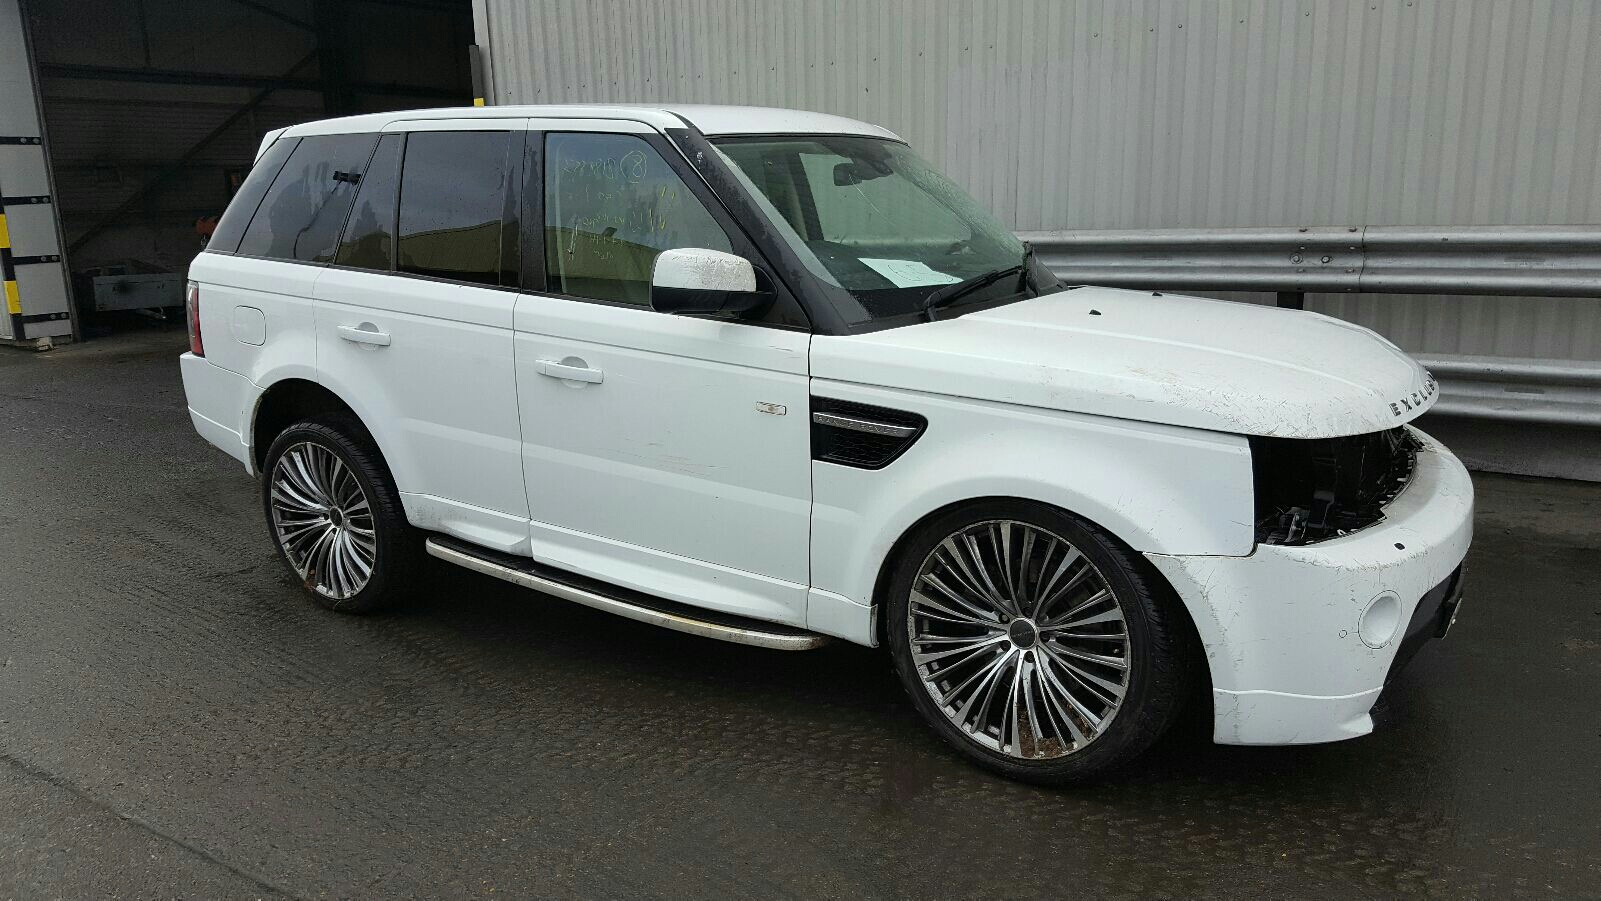 Image for a Land Rover Range Rover Sport 2011 5 Door Estate